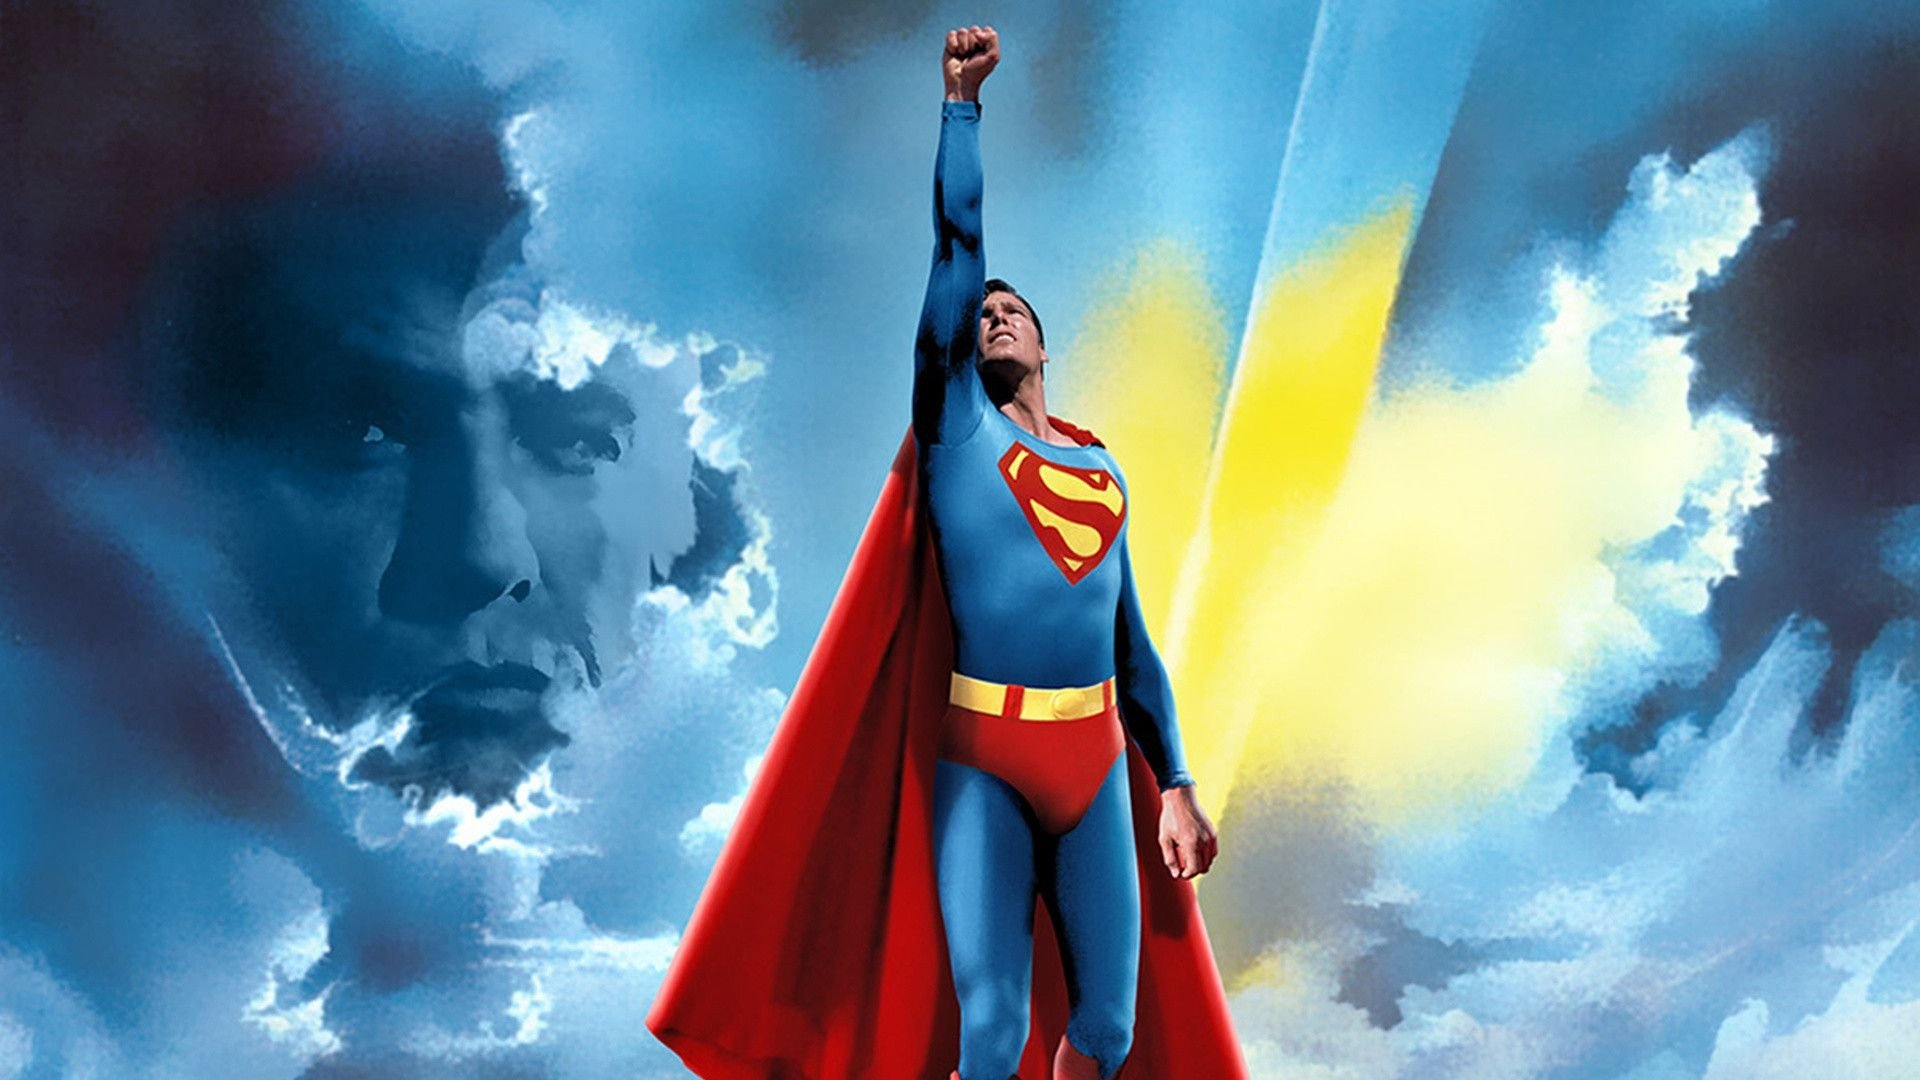 the greatest superheroes of all times superman Most of them will debate who the greatest superheroes of all time are superman is arguably the greatest superhero of all time the things that come to mind to most people when describing a superhero is usually a muscular person that wears a cape and has the abilities of flight.